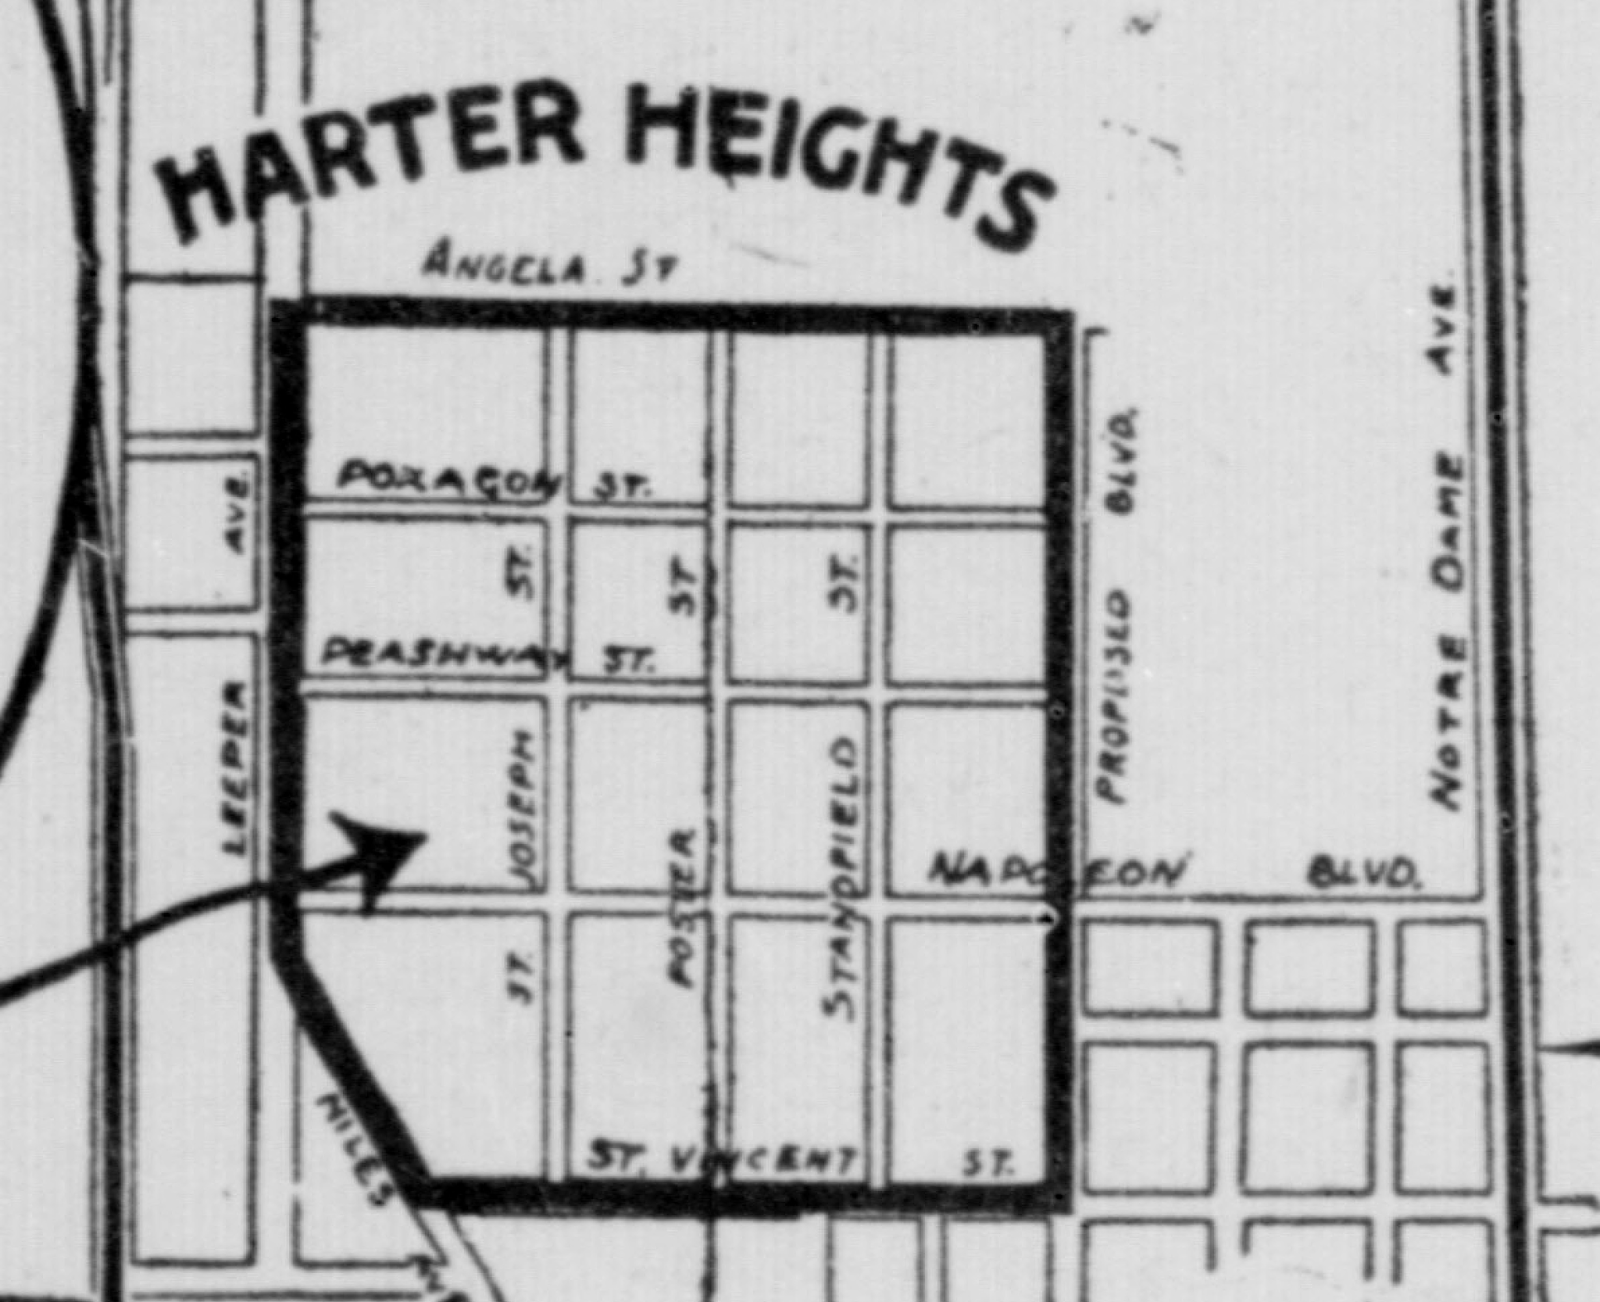 the proposed north south boulevard on the map was never built